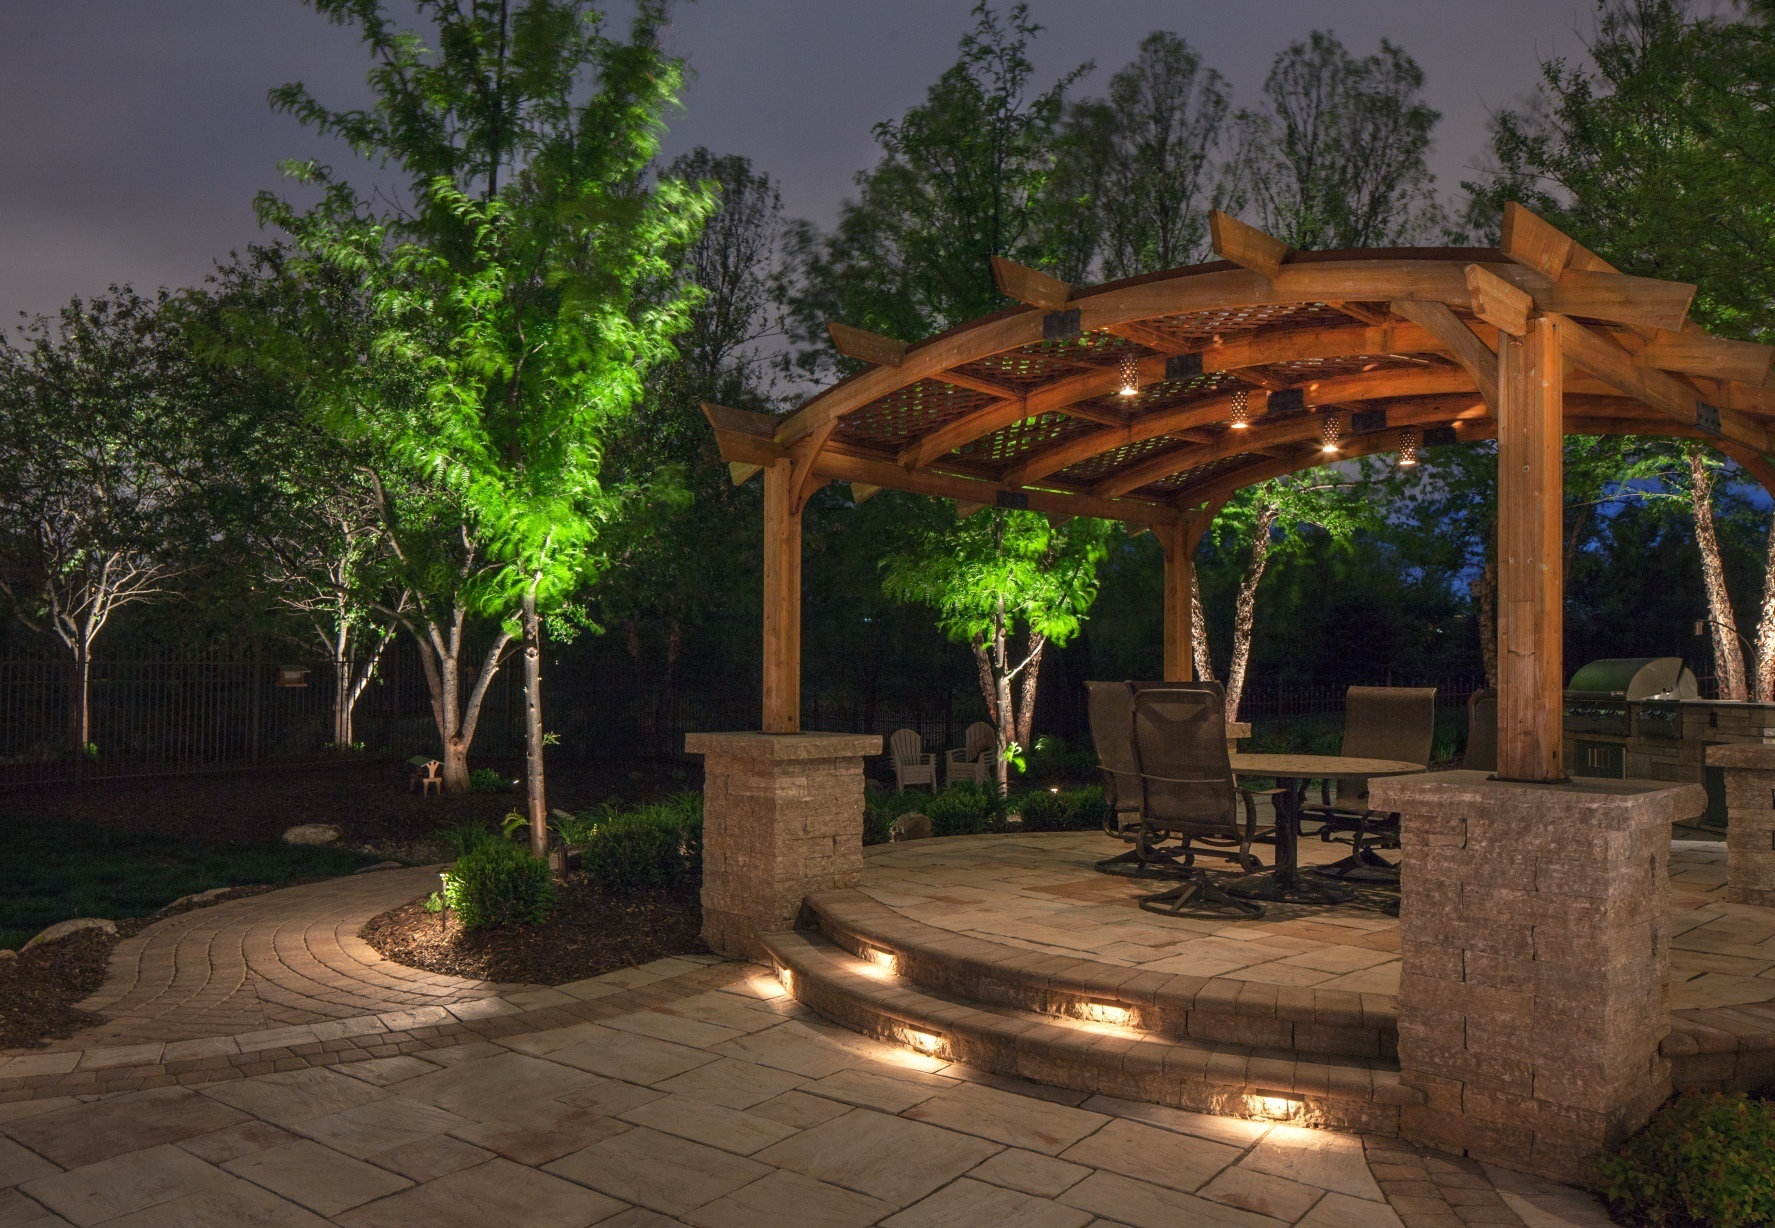 The 6 best spots for landscape lighting projects